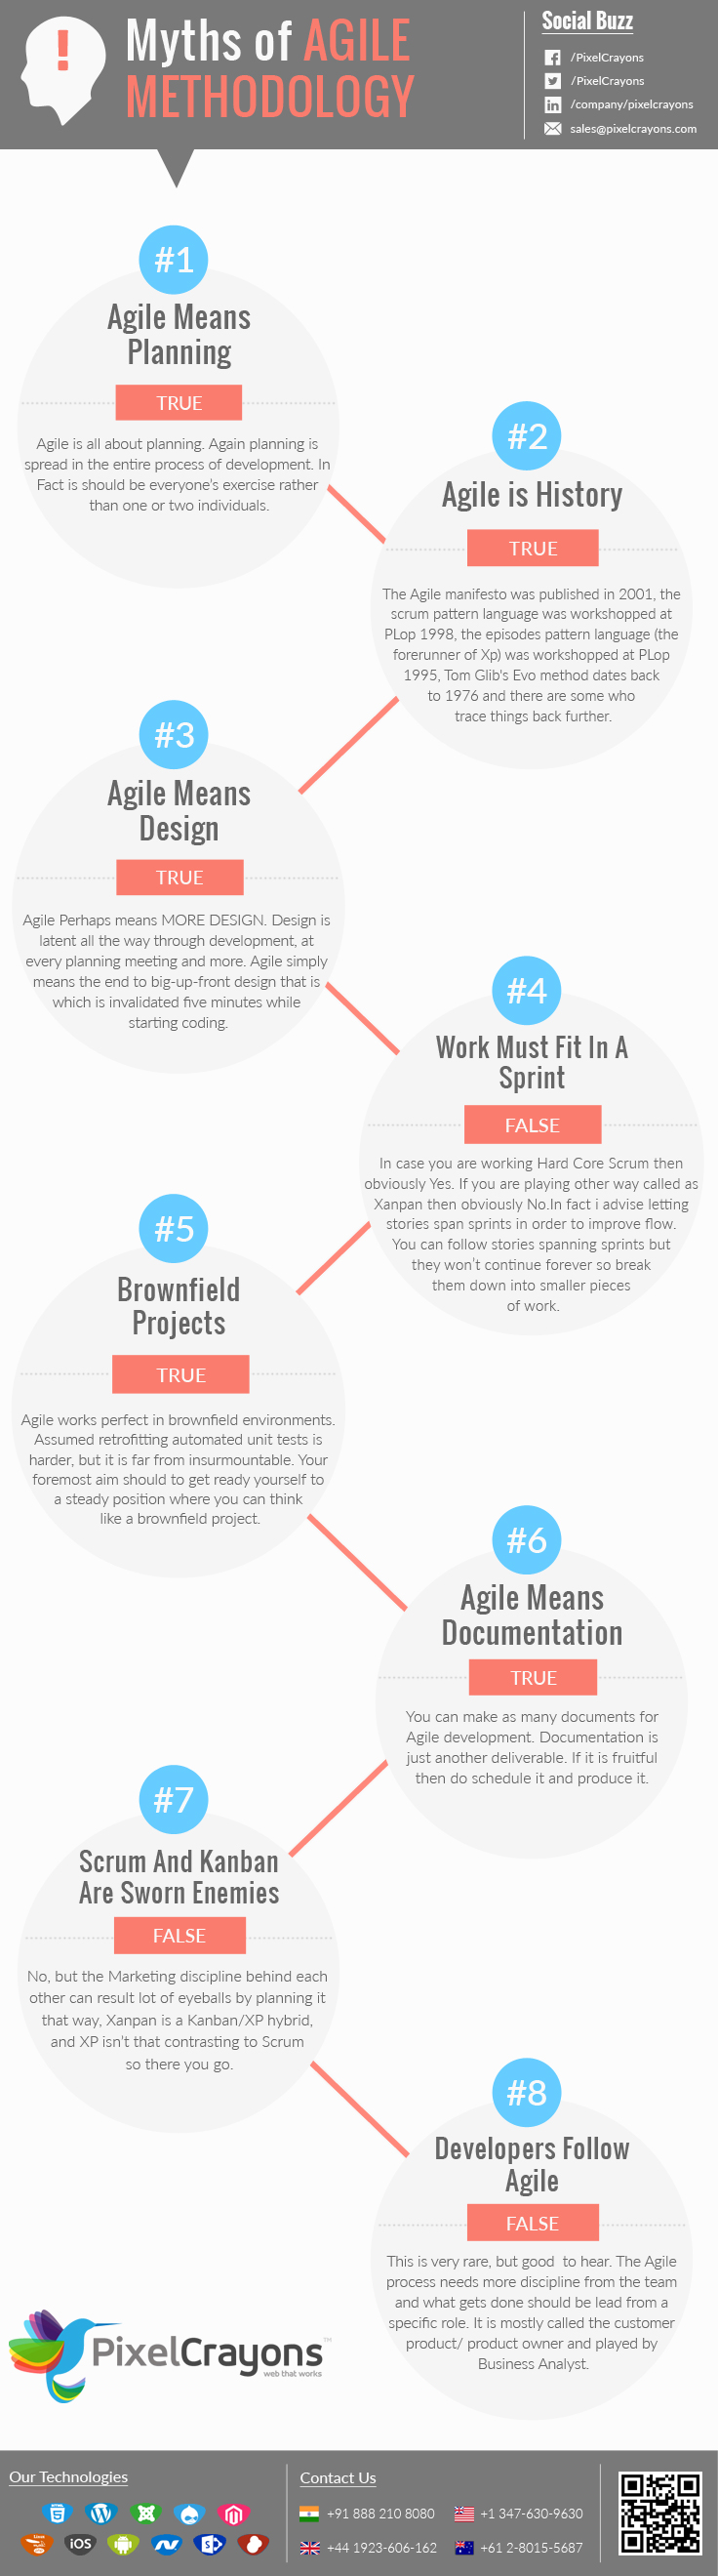 Myths of Agile methodology – Infographic